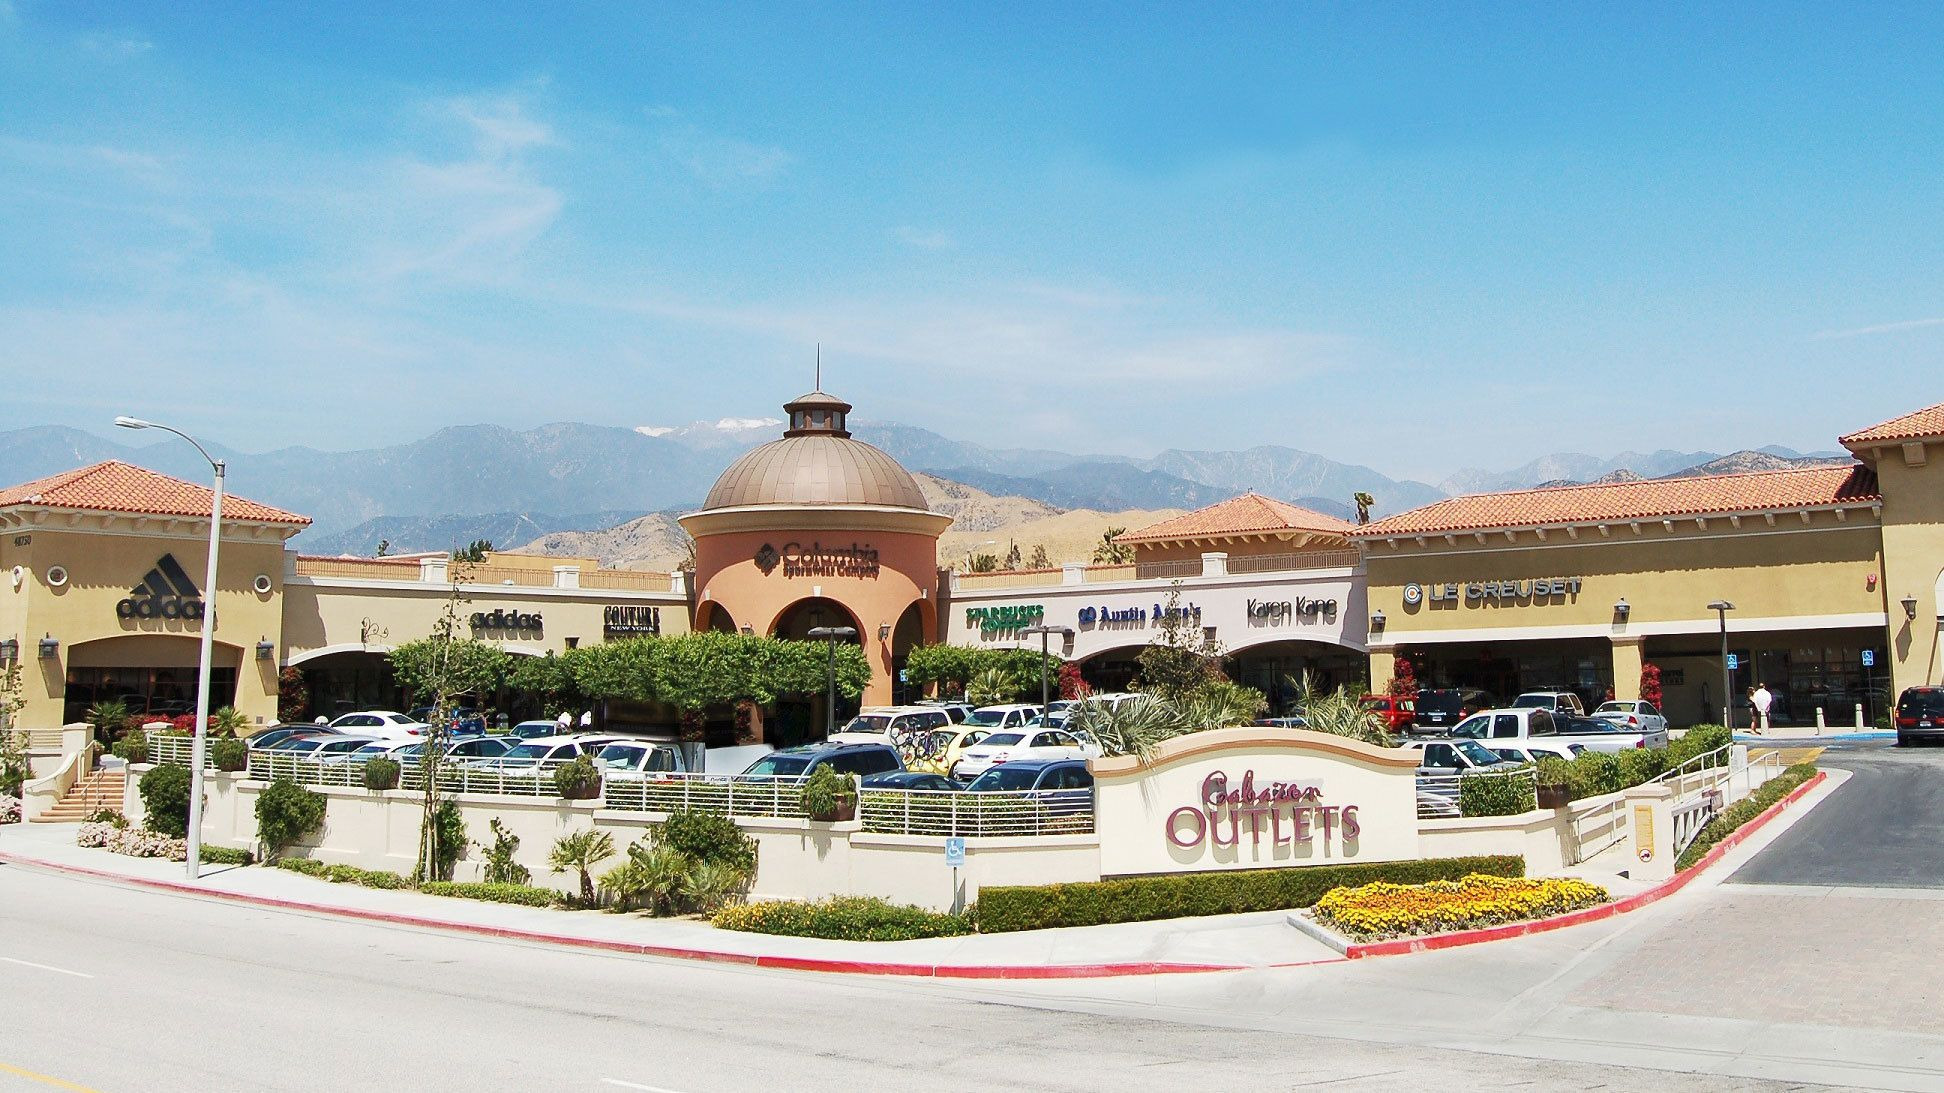 Cabazon Outlet stores in Palm Springs